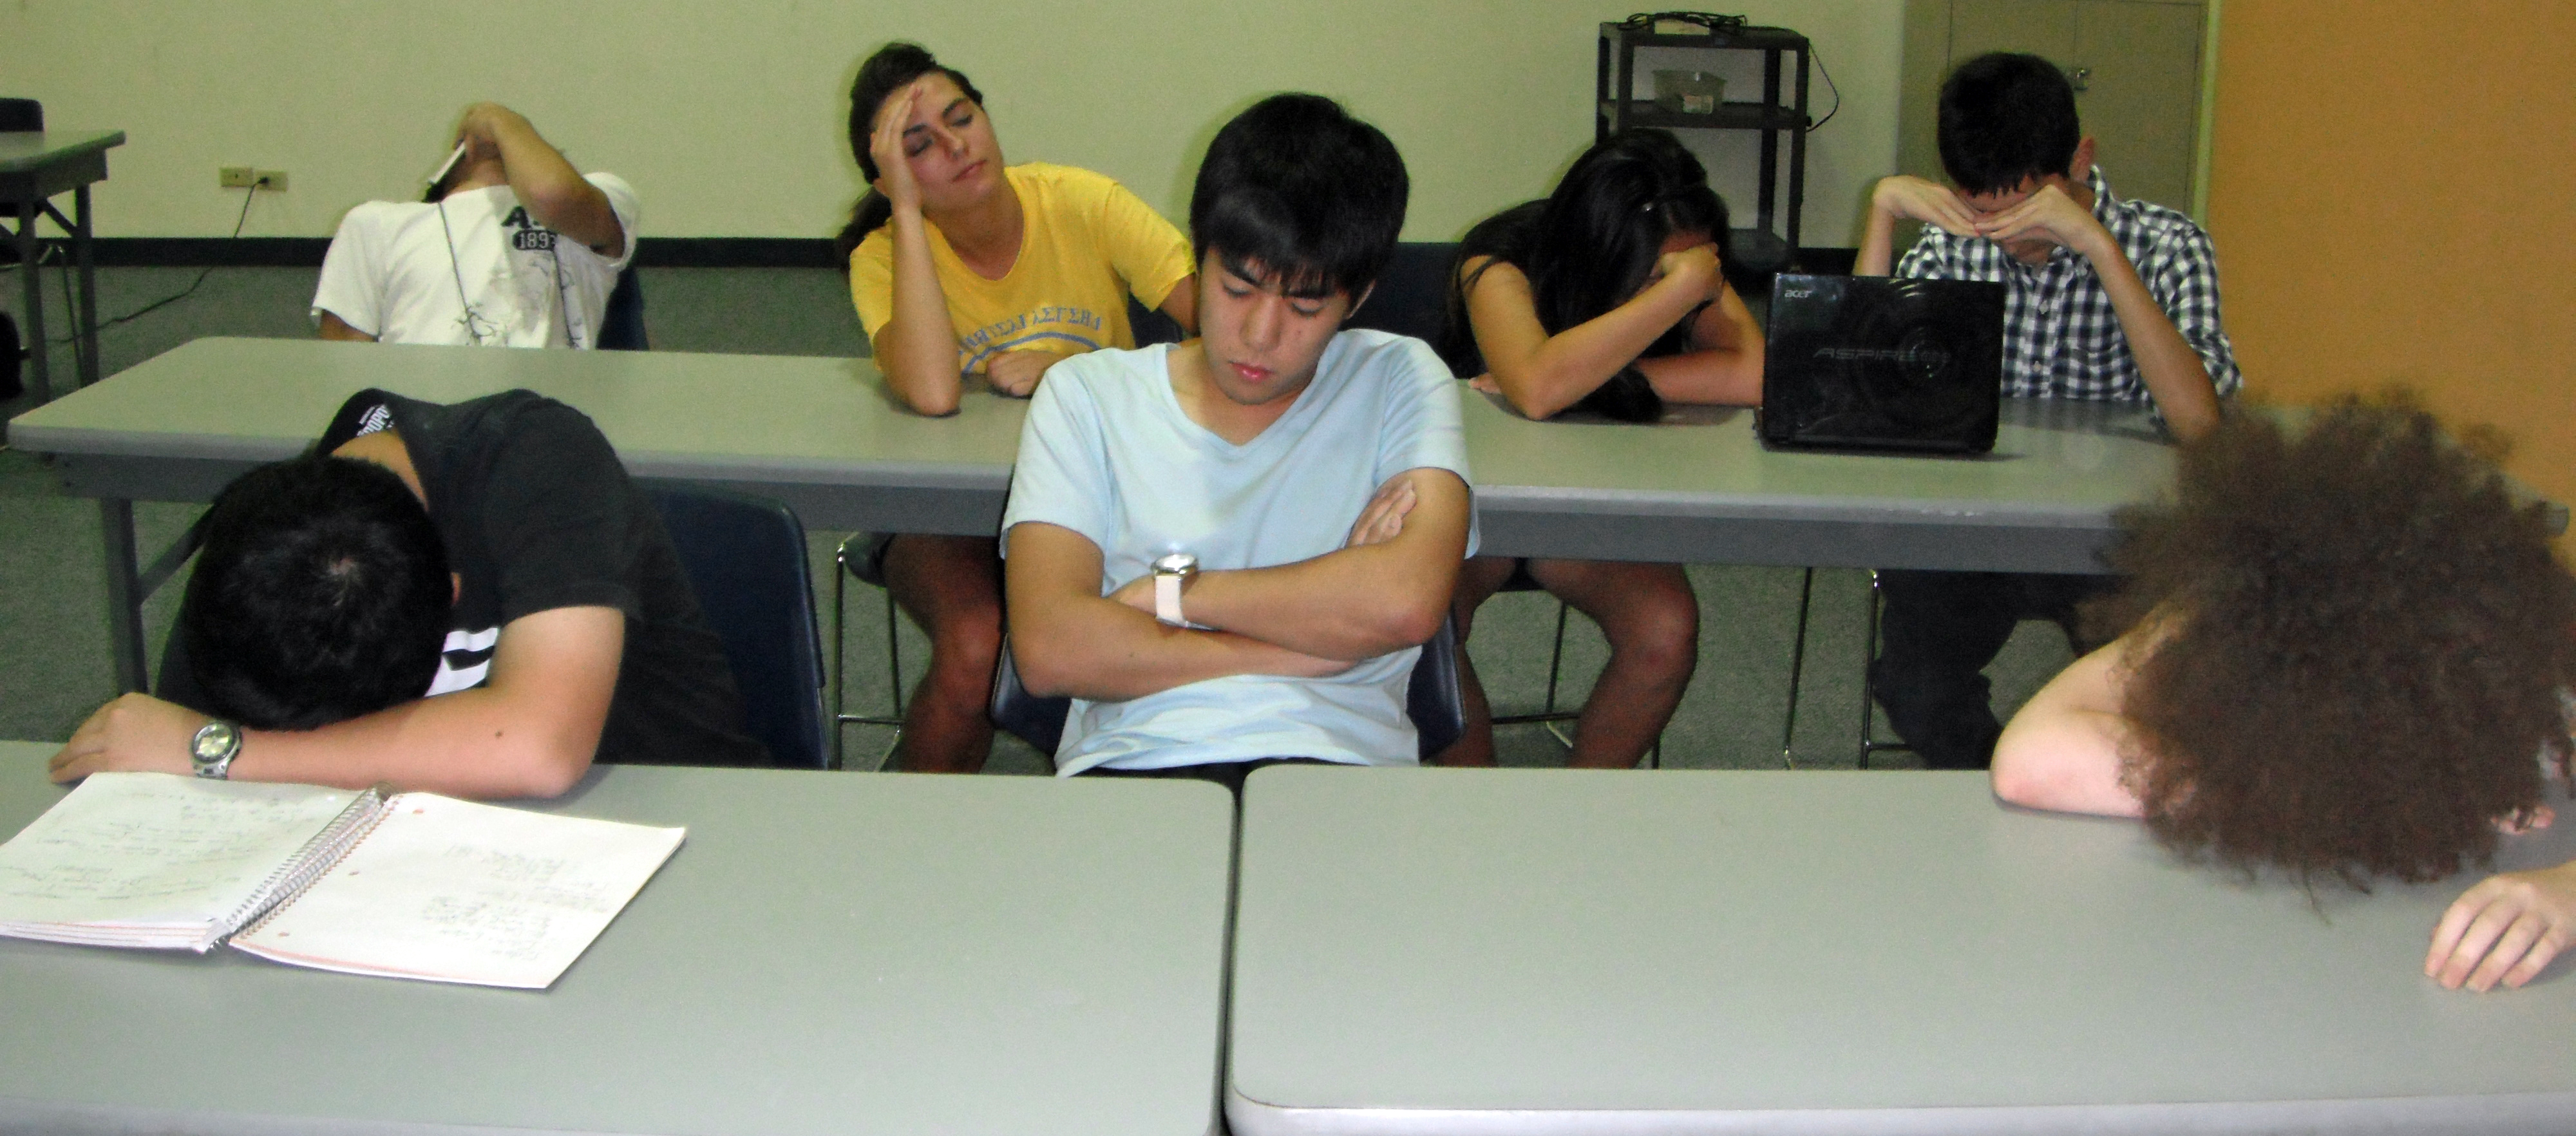 essay on sleeping in class Getting good sleep at night is essential to paying attention in class here's an in-depth look at sleep and how you can 9 comments on sleep at night, not in class.